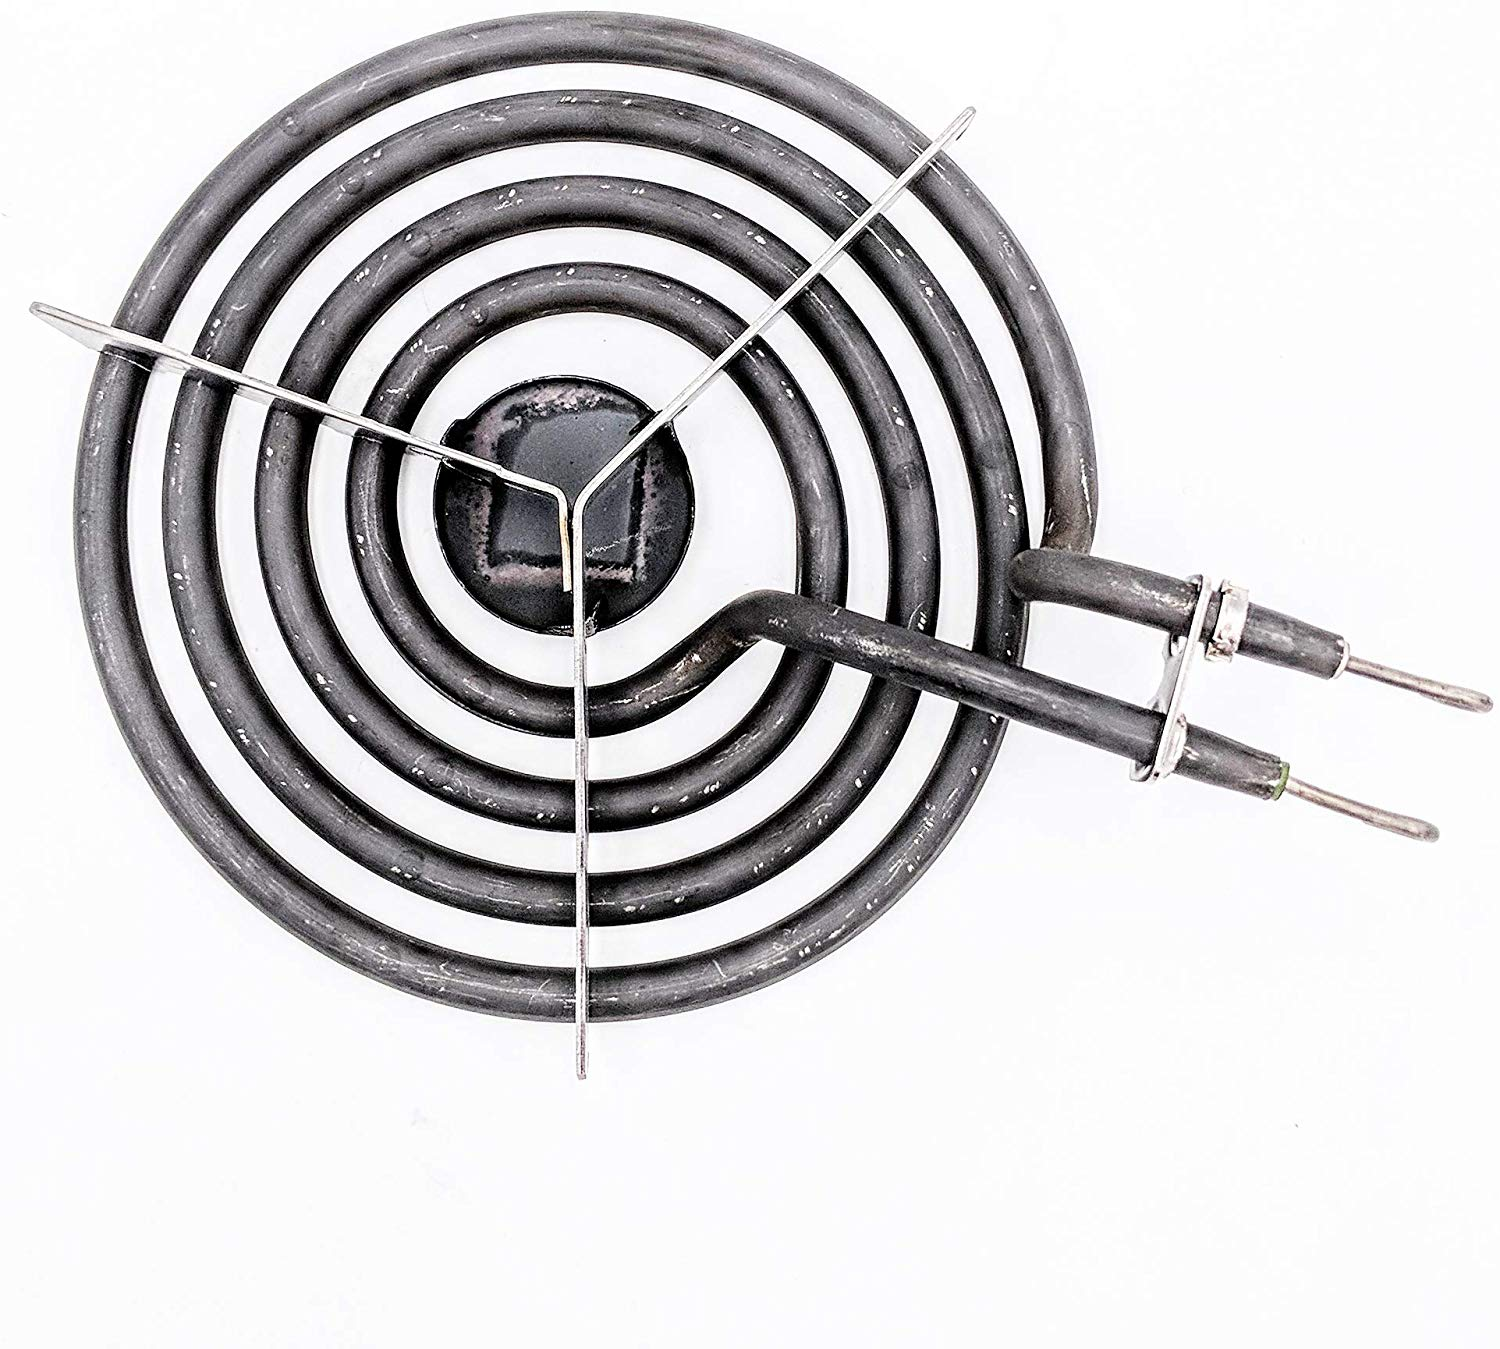 Kenmore / Sears 790.93750103 Small Surface Burner Element Replacement